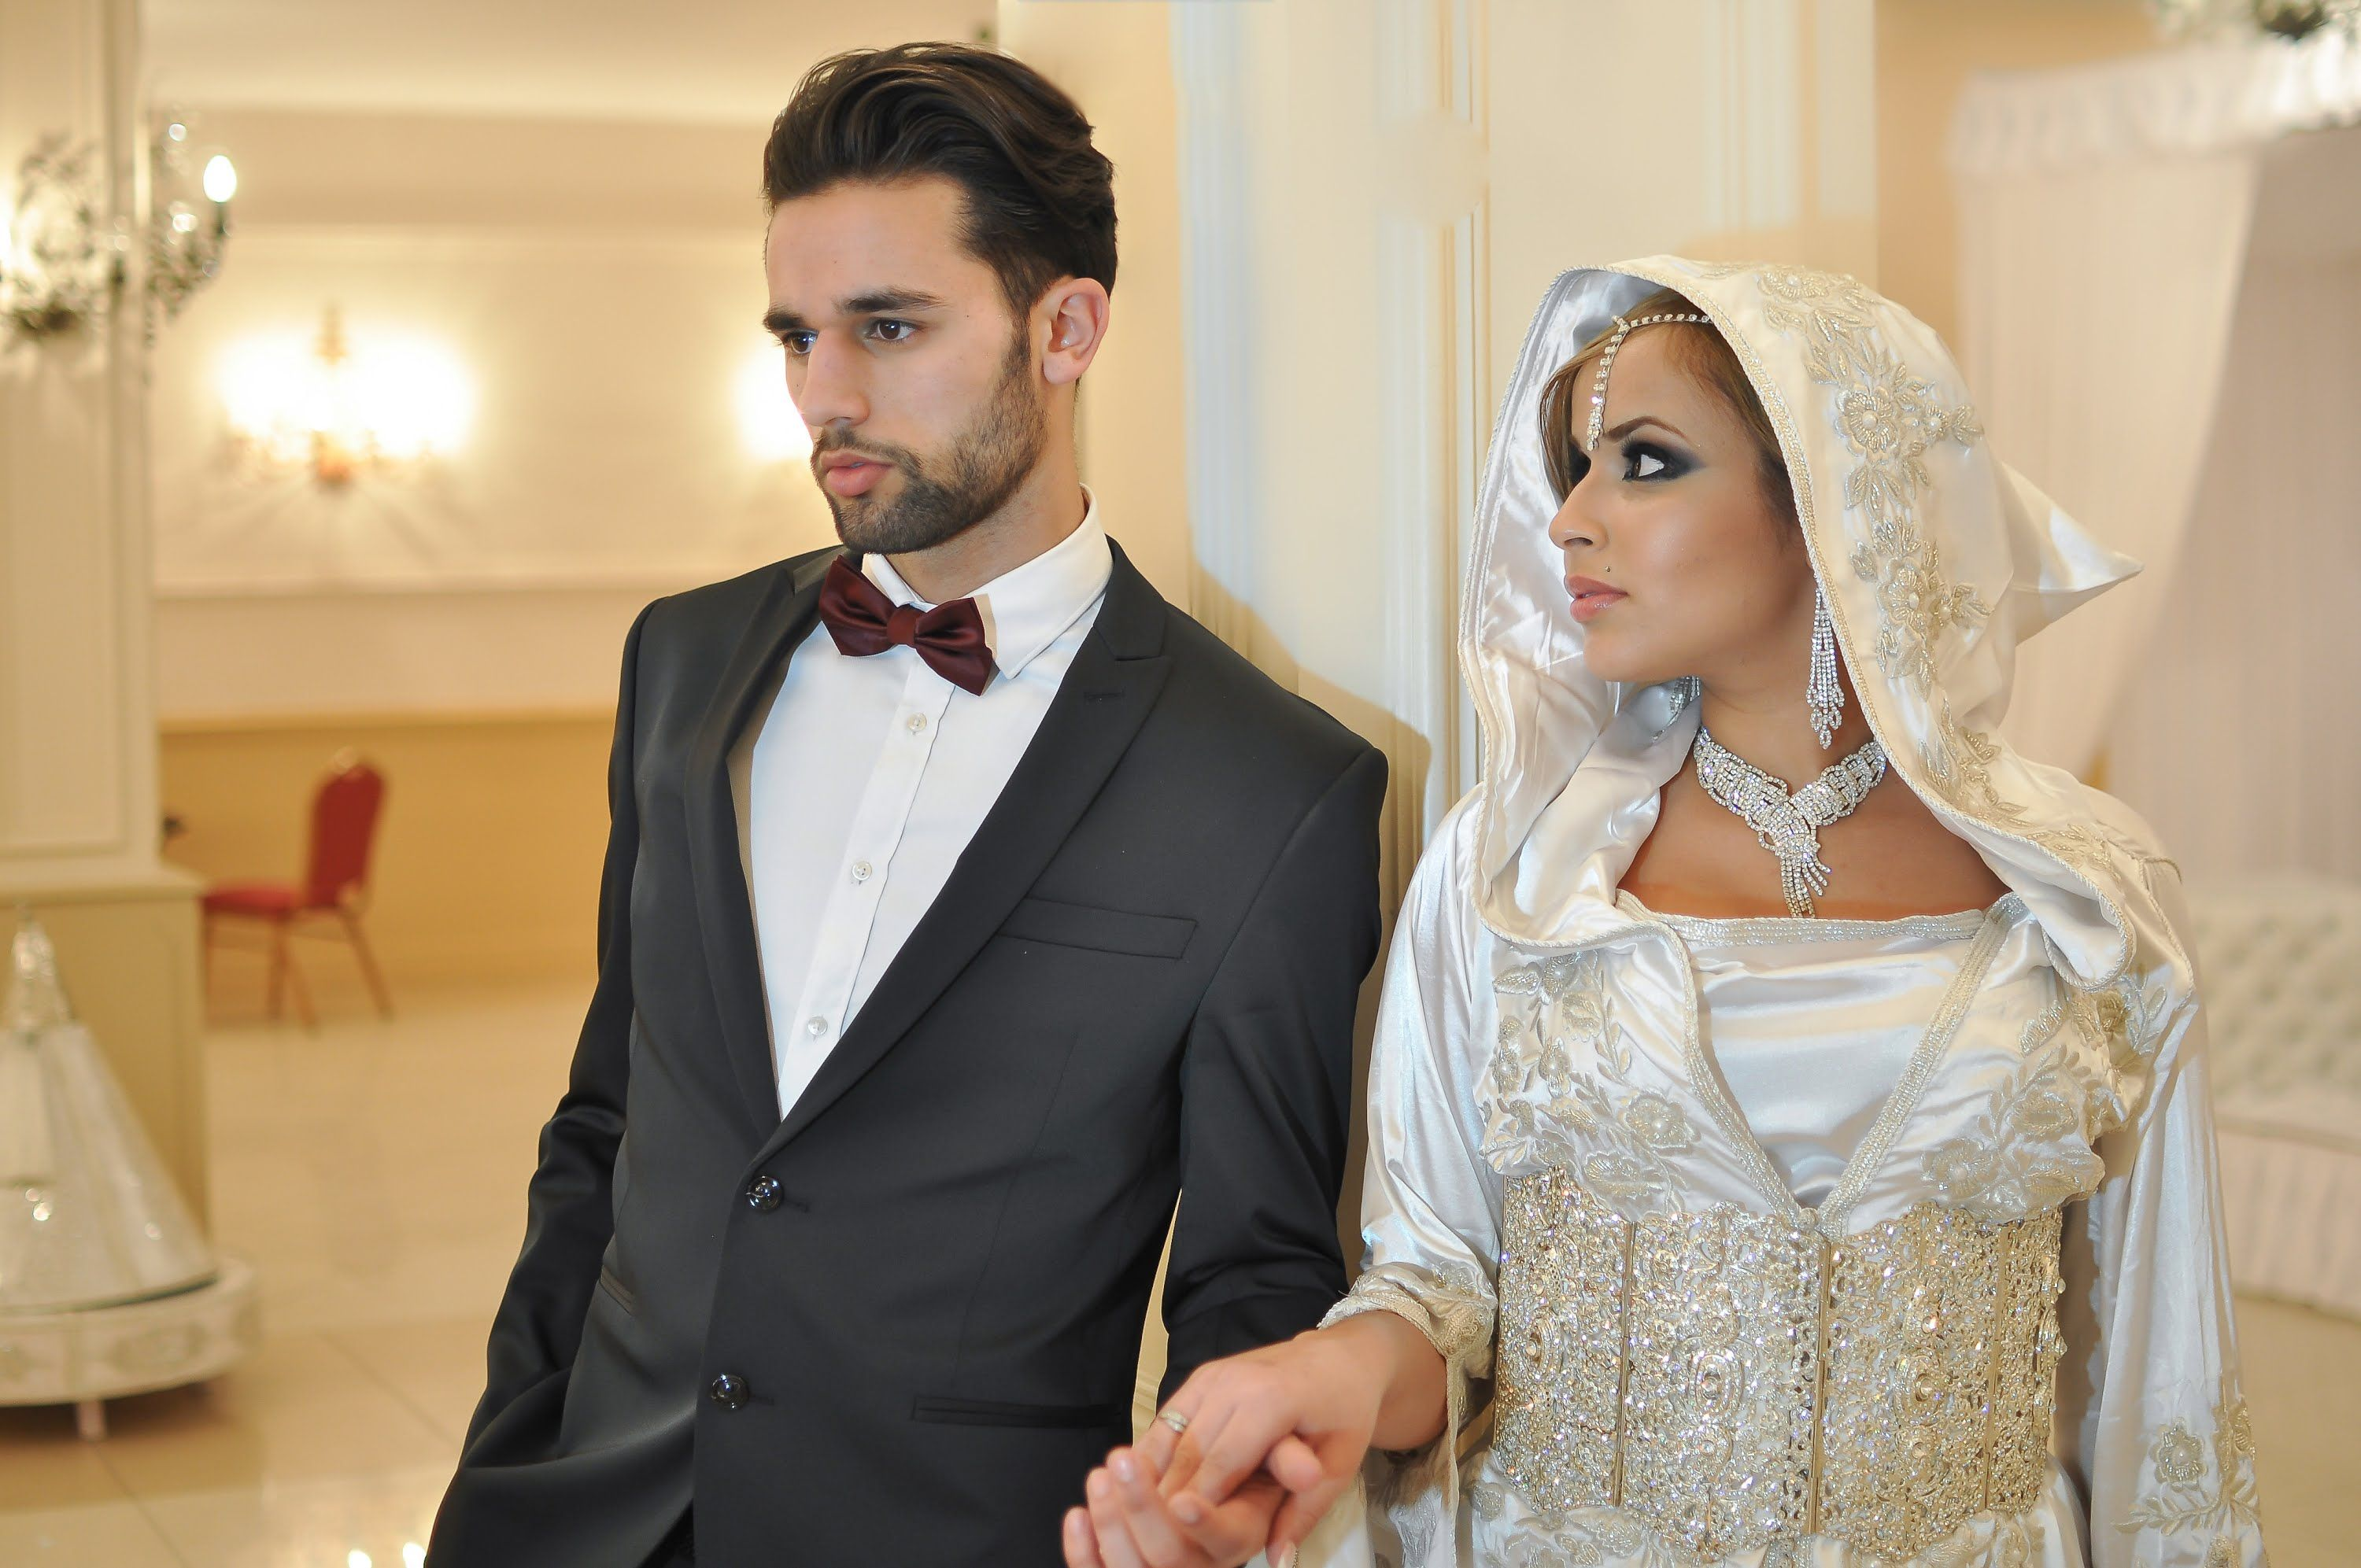 Robe de mariage oujda good style dresses pinterest mariage and